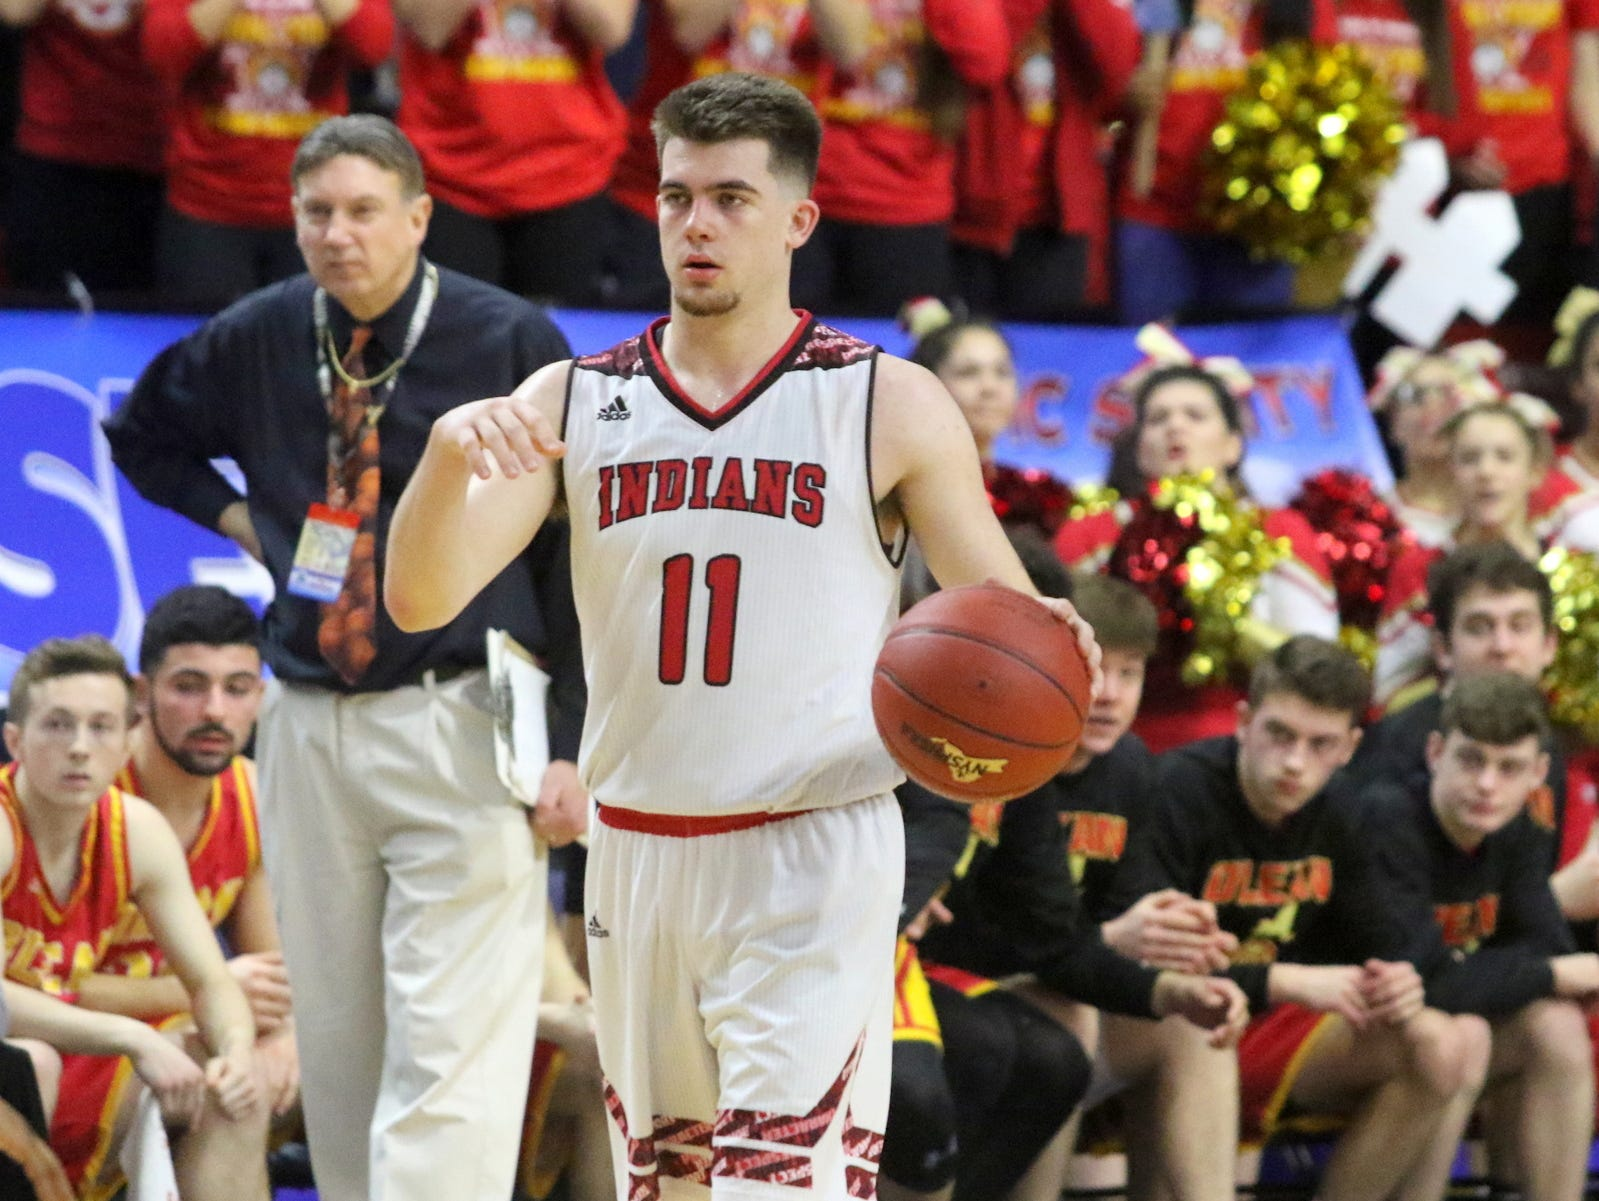 Joseph Girard III of Glens Falls takes a shot during an 83-63 win over Olean in a Class B boys basketball state semifinal March 15, 2019 at Floyd L. Maines Veterans Memorial Arena in Binghamton.